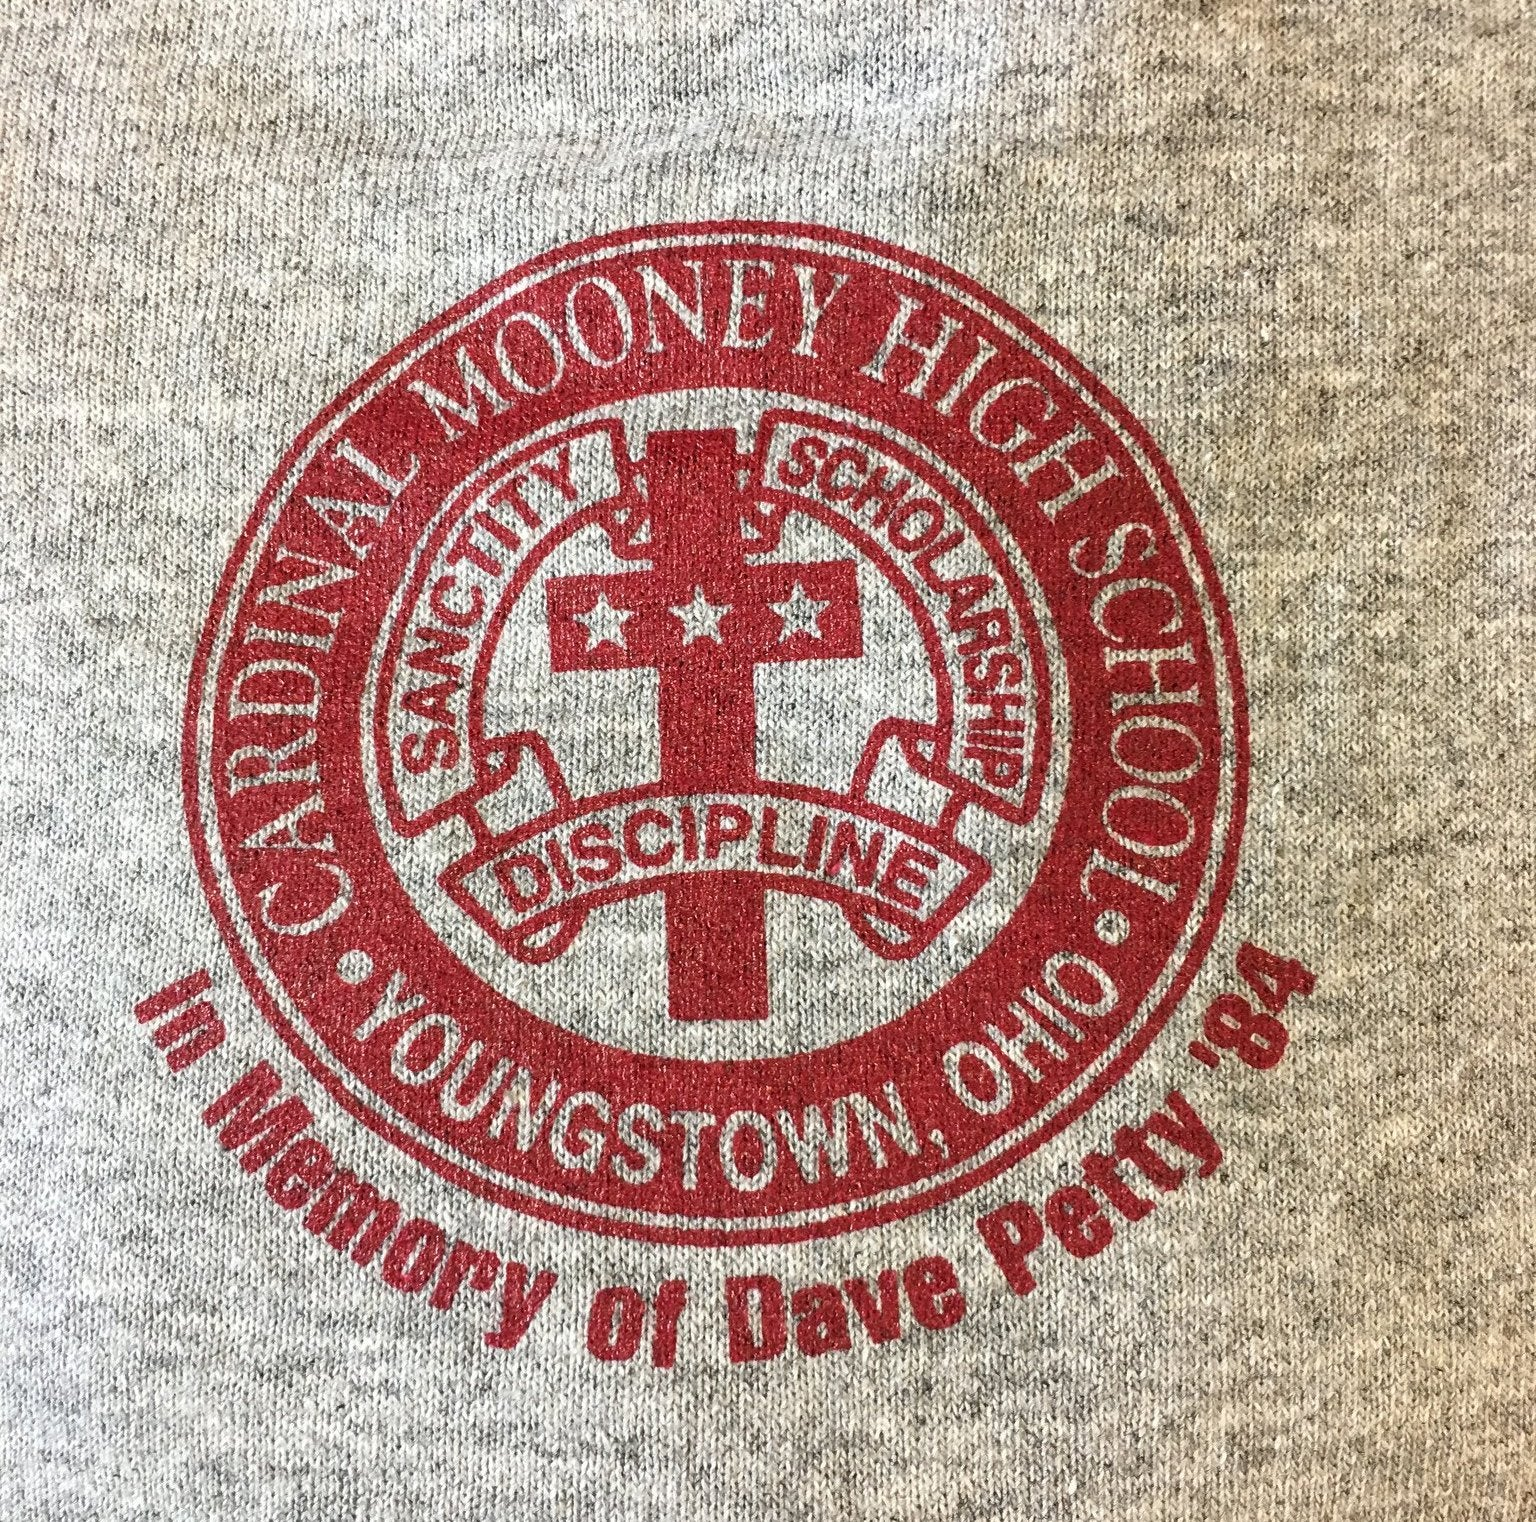 Dave Petty Memorial Scholarship T-Shirt